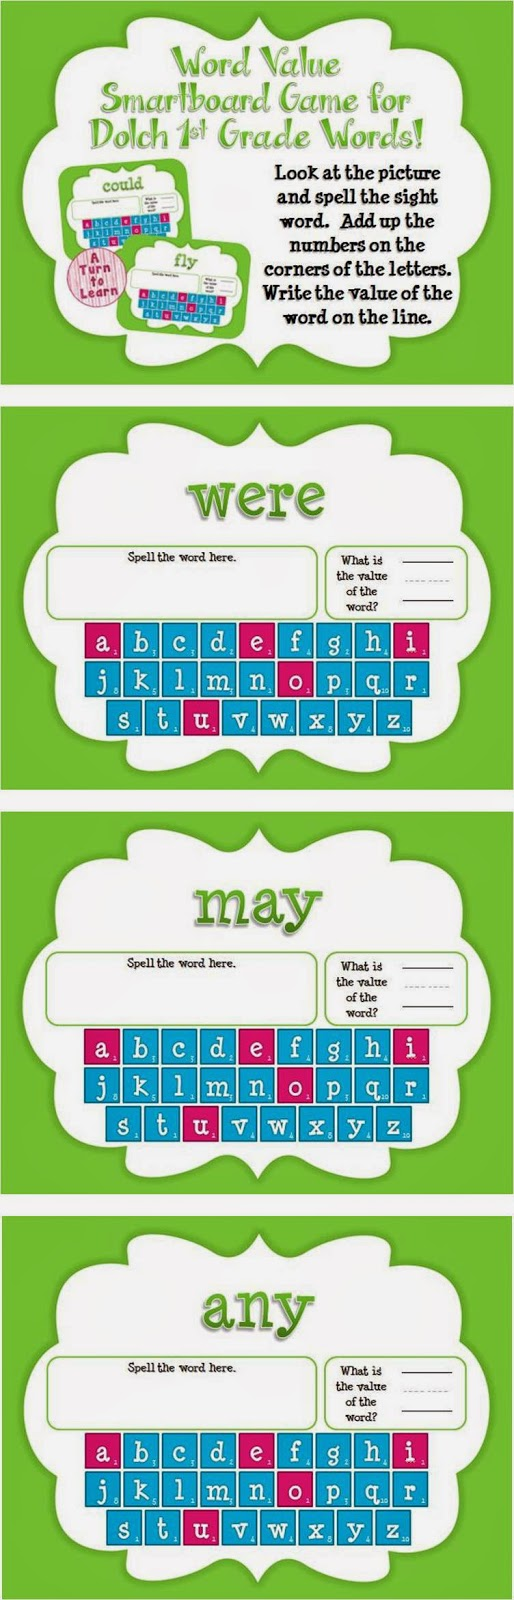 Word Value Game for Dolch 1st Grade Words - Smartboard or Promethean Board!